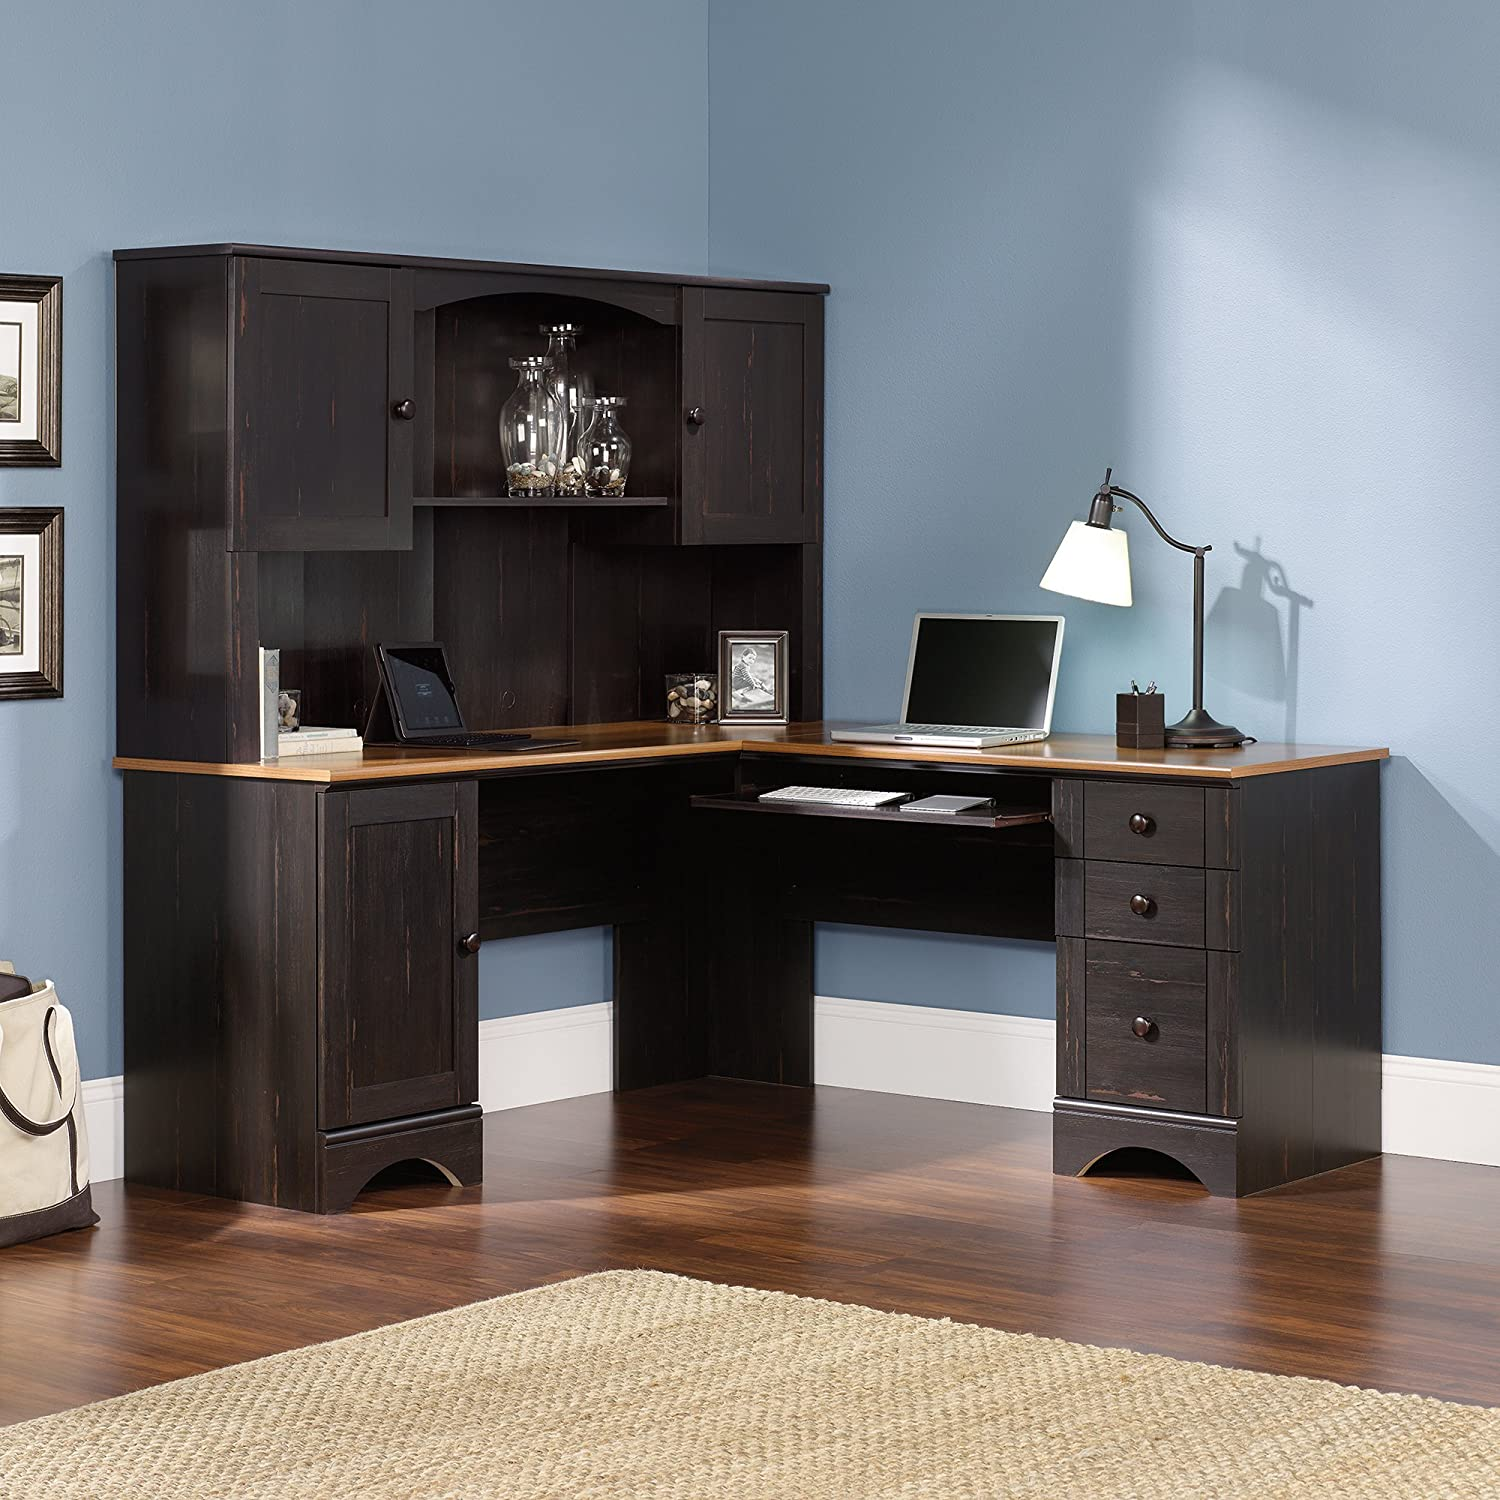 Amazon.com: Sauder Office Furniture Harbor View L-Desk with Hutch and  Reversible Storage, Cherry/Antique Black: Kitchen & Dining - Amazon.com: Sauder Office Furniture Harbor View L-Desk With Hutch